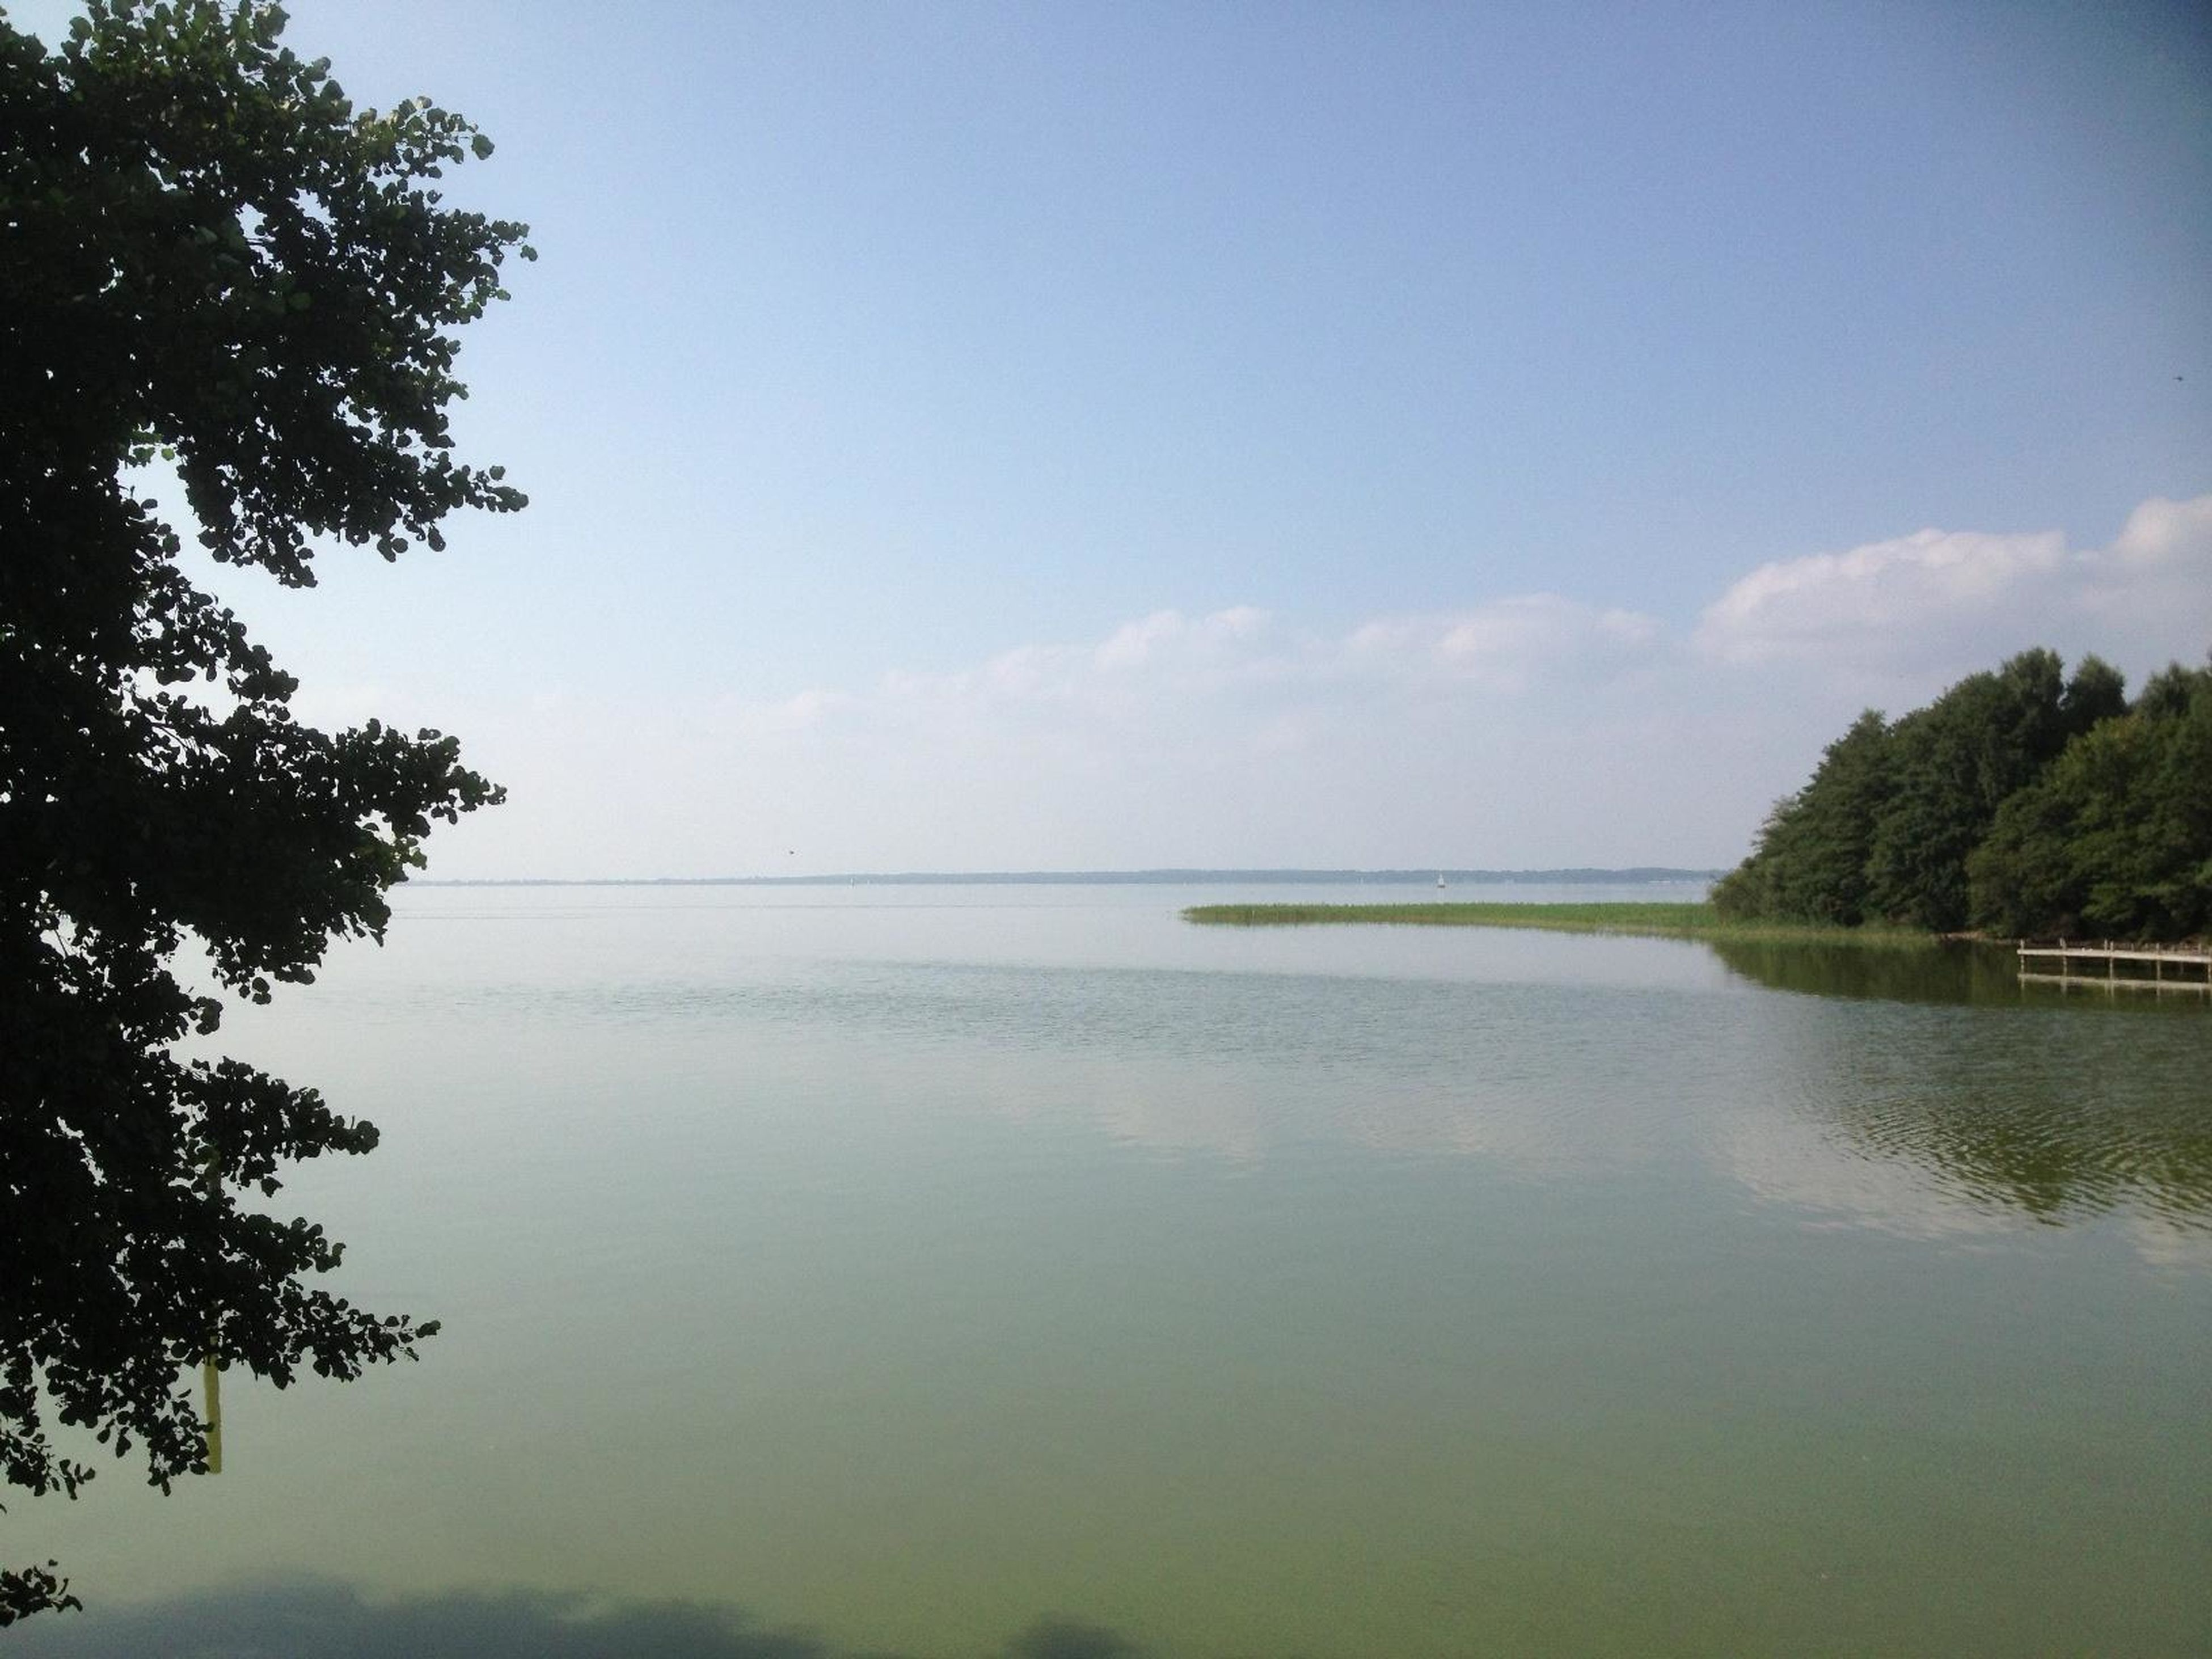 water, tranquil scene, tranquility, scenics, tree, beauty in nature, sky, waterfront, reflection, nature, lake, sea, horizon over water, idyllic, calm, rippled, outdoors, no people, cloud, day